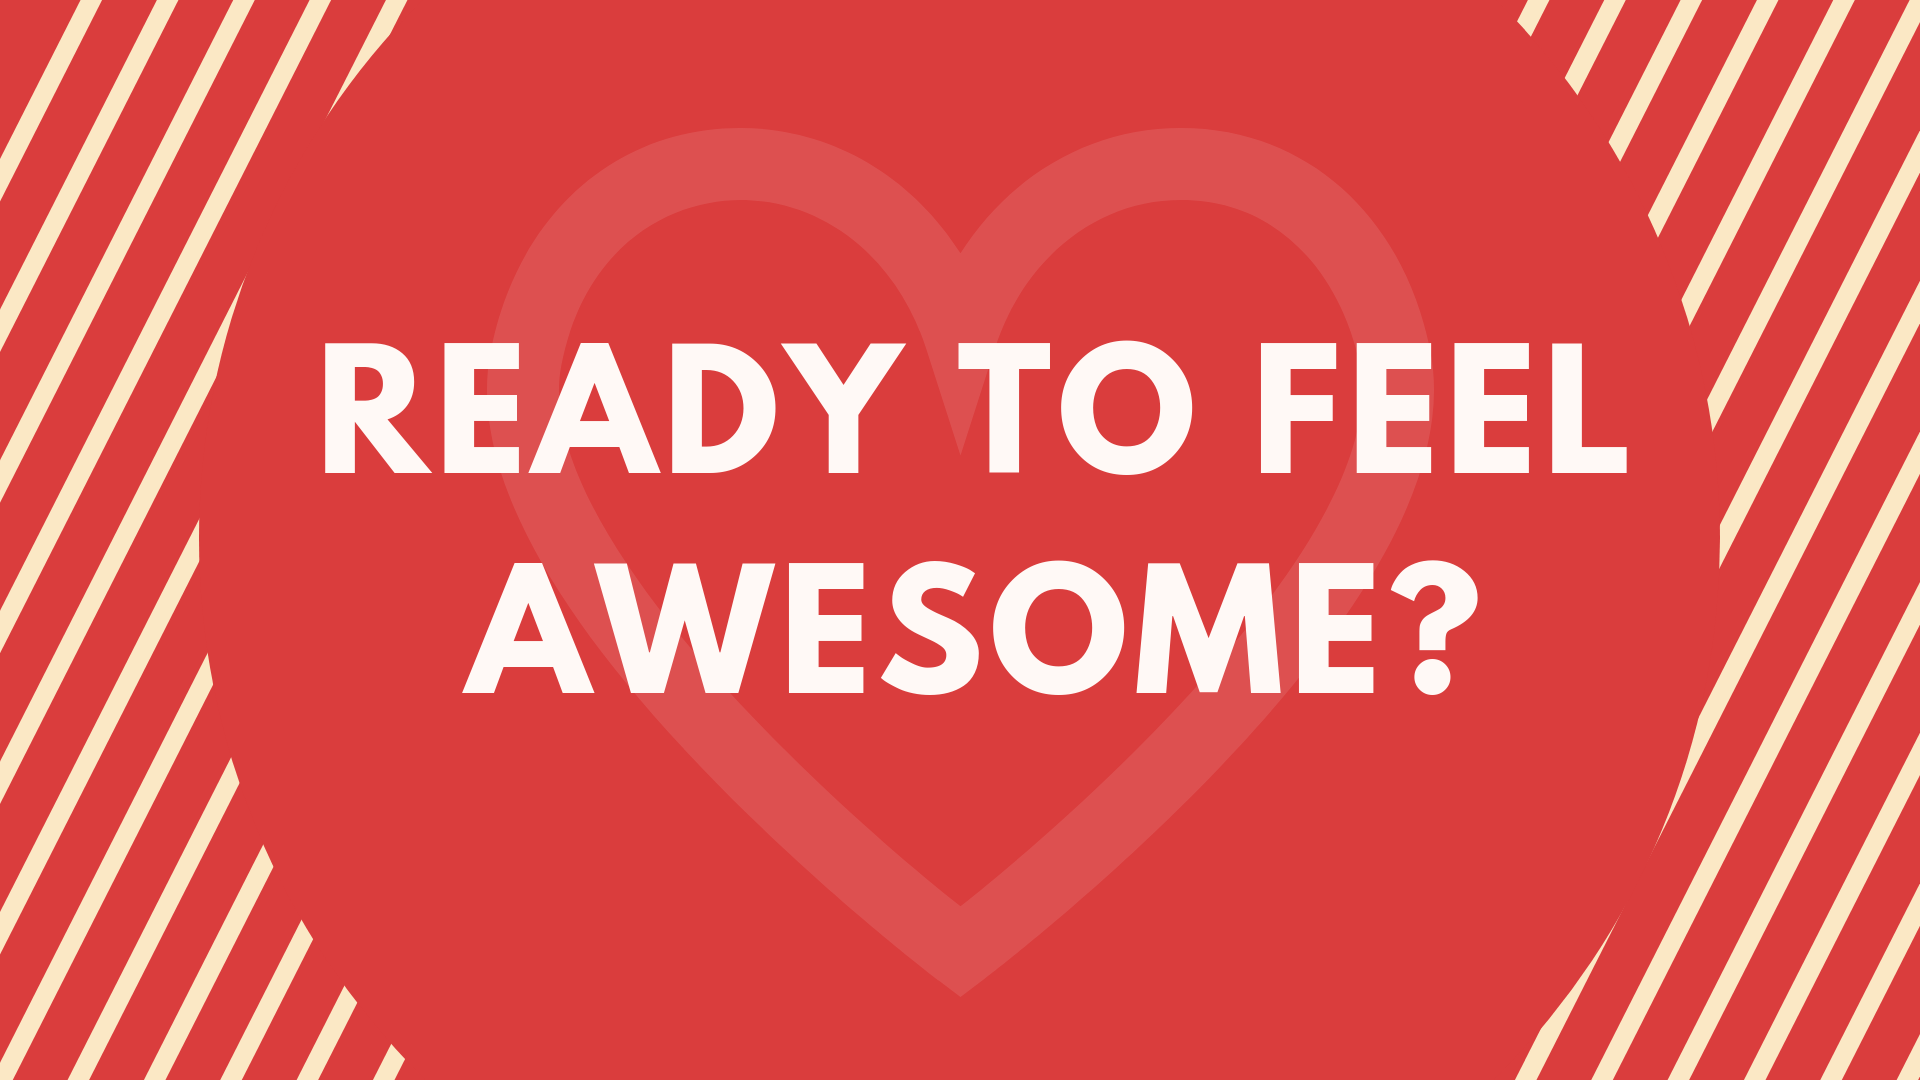 READY TO FEEL AWESOME?